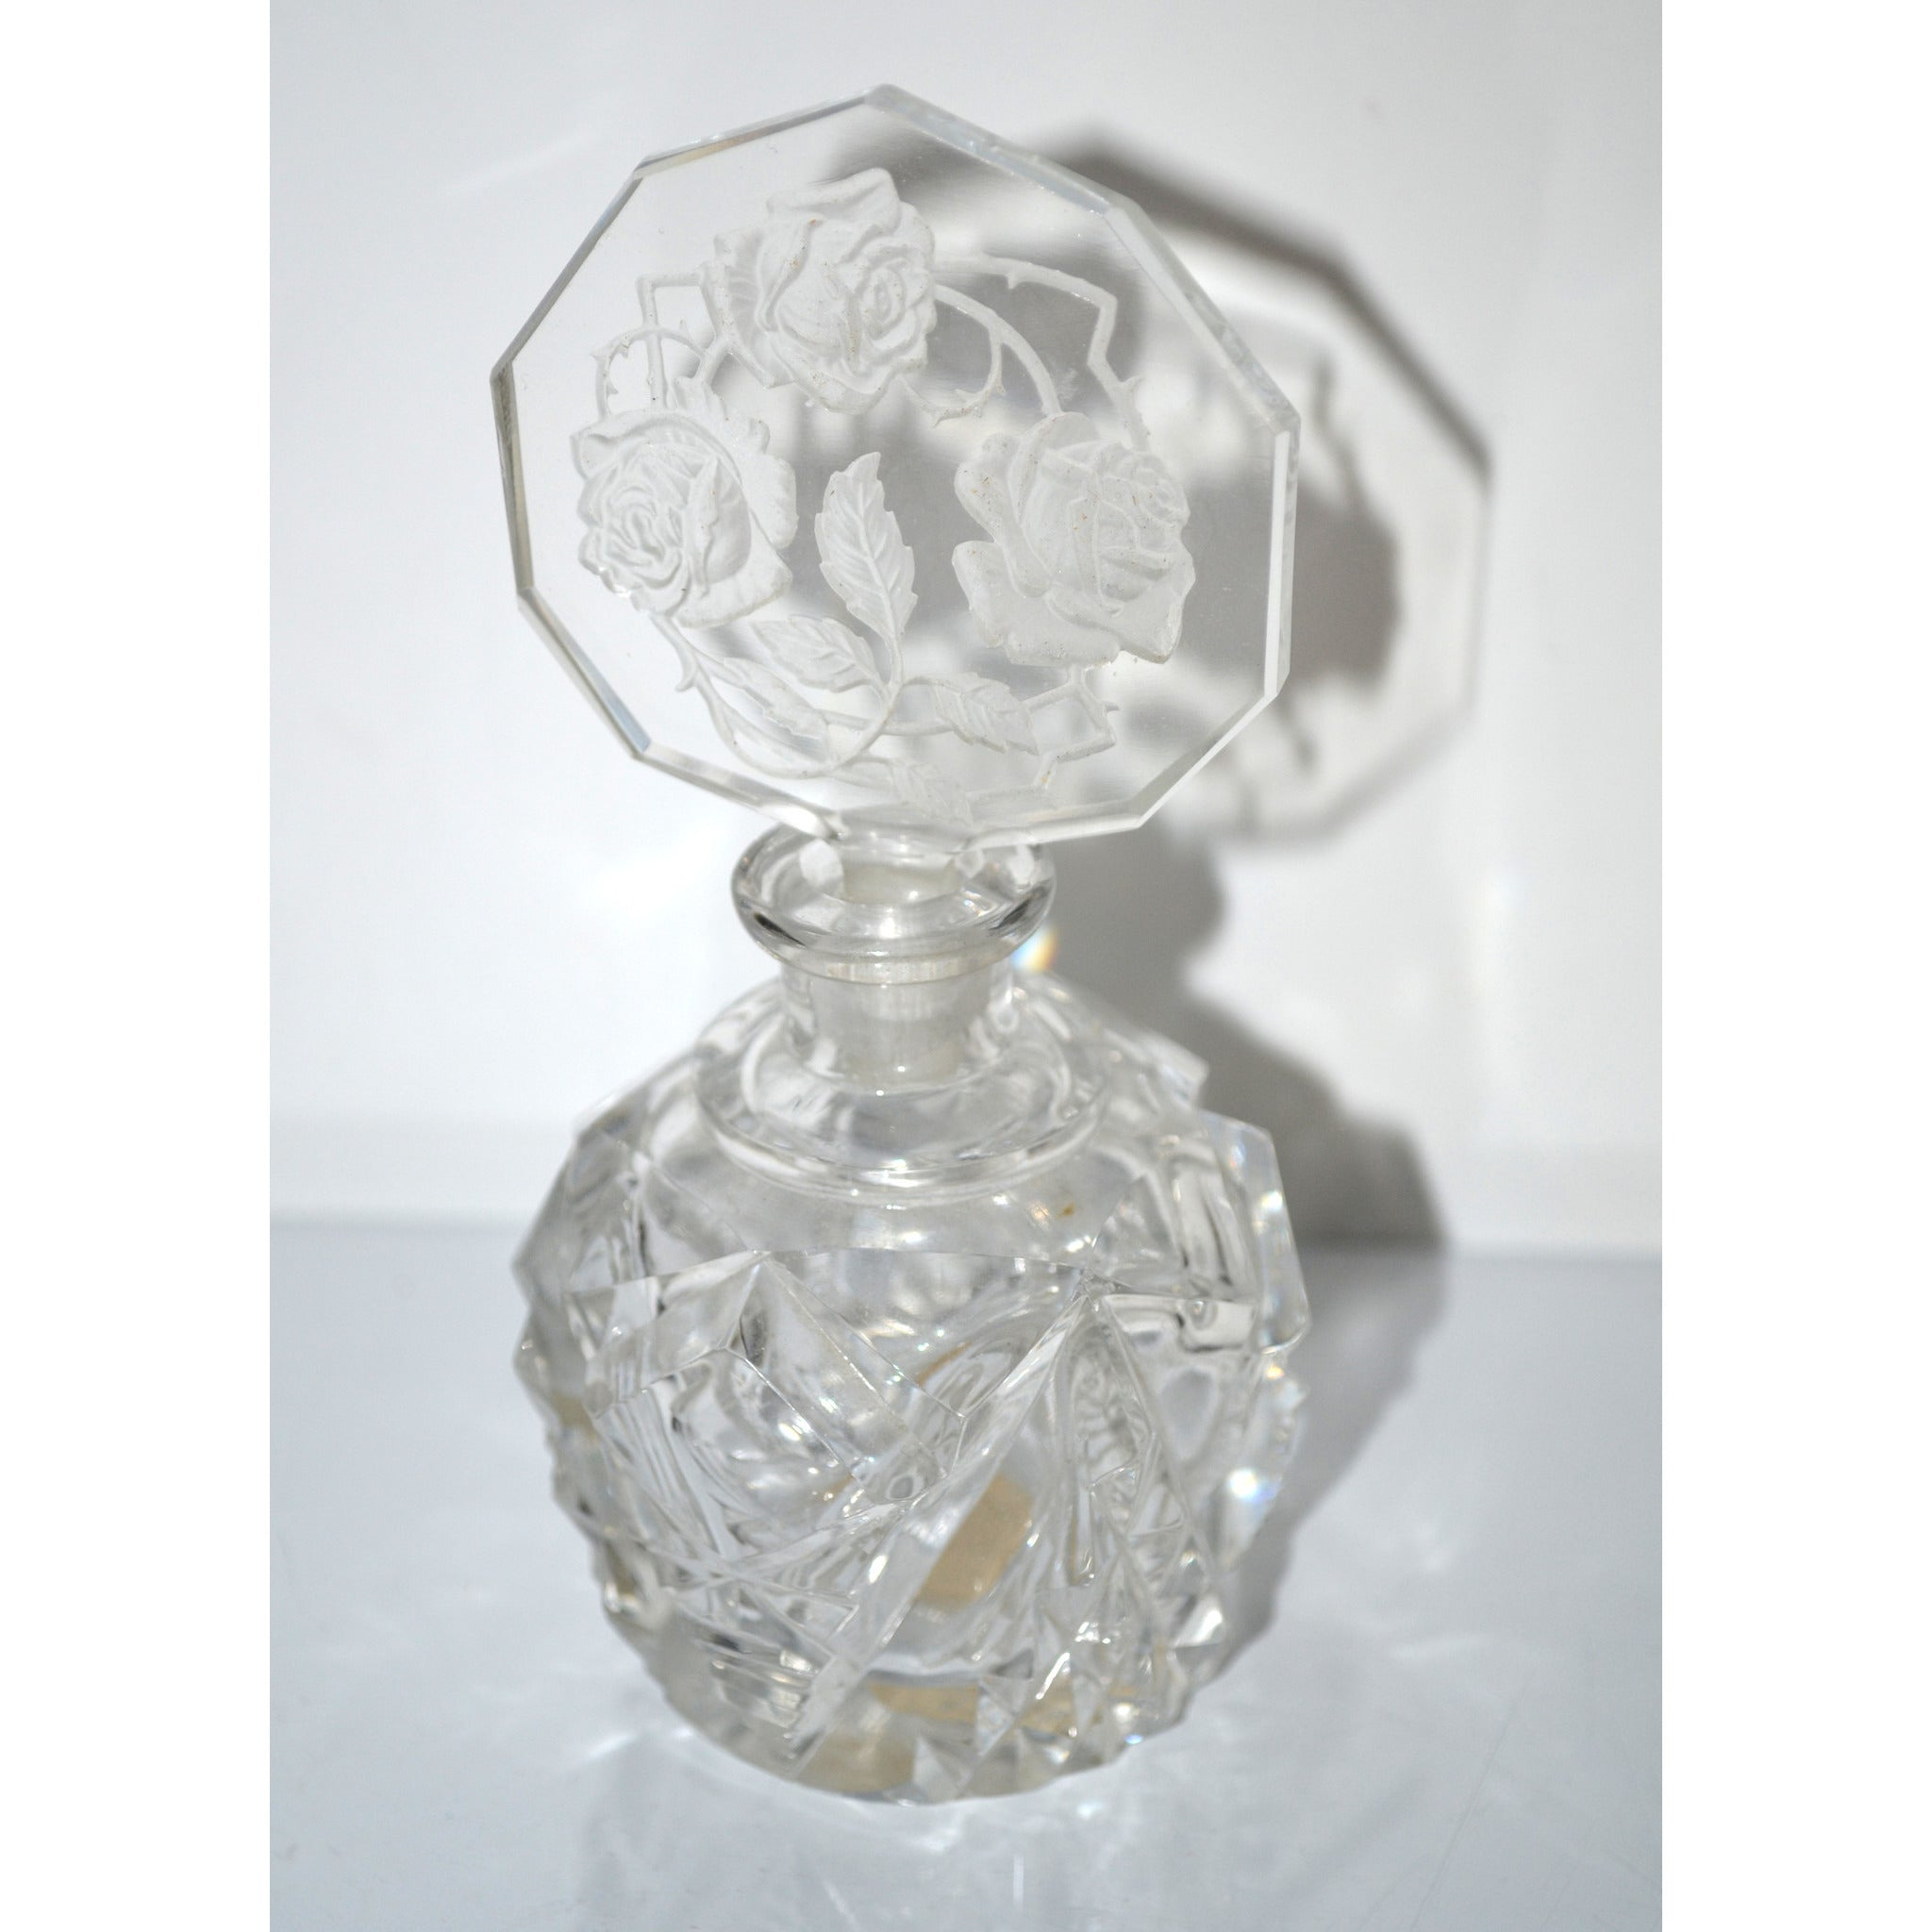 Vintage Morlee Czech Crystal Perfume Bottle